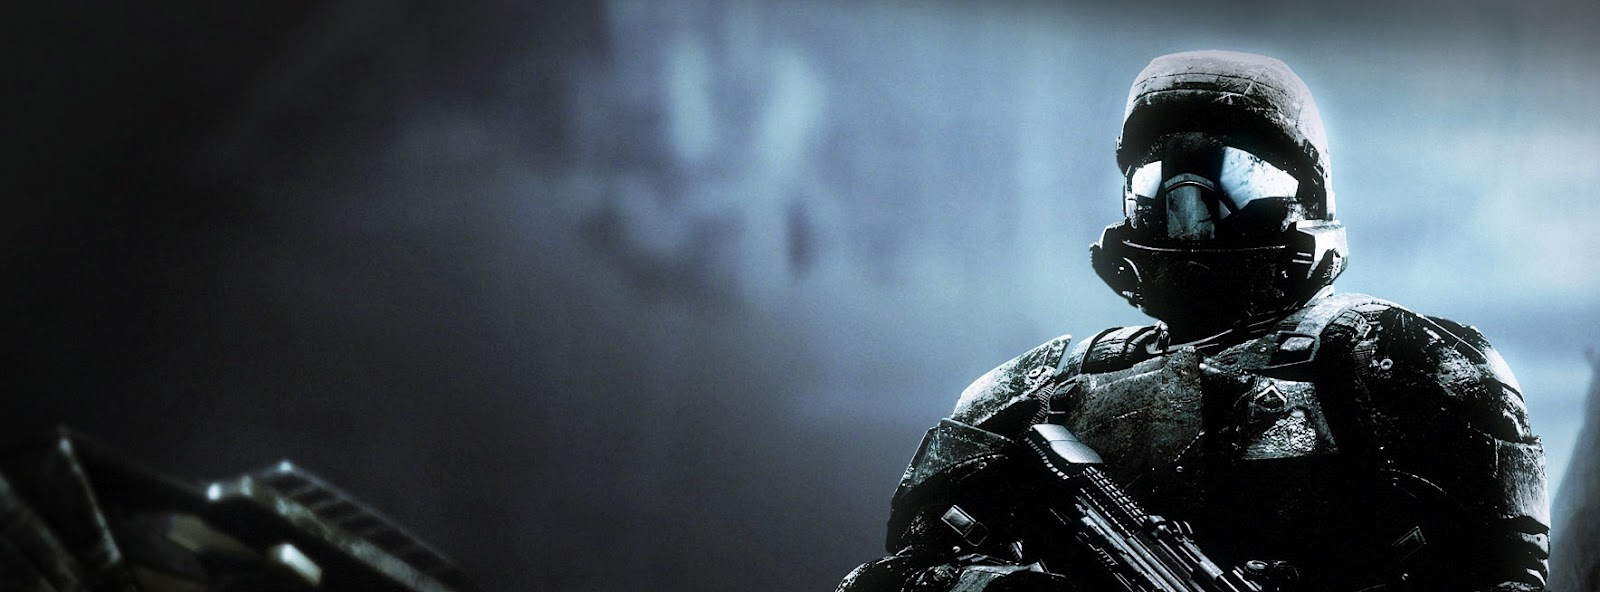 Spec Ops Wallpaper Hd The Game Stuffs Gaming Cover Photos For Facebook Set 1